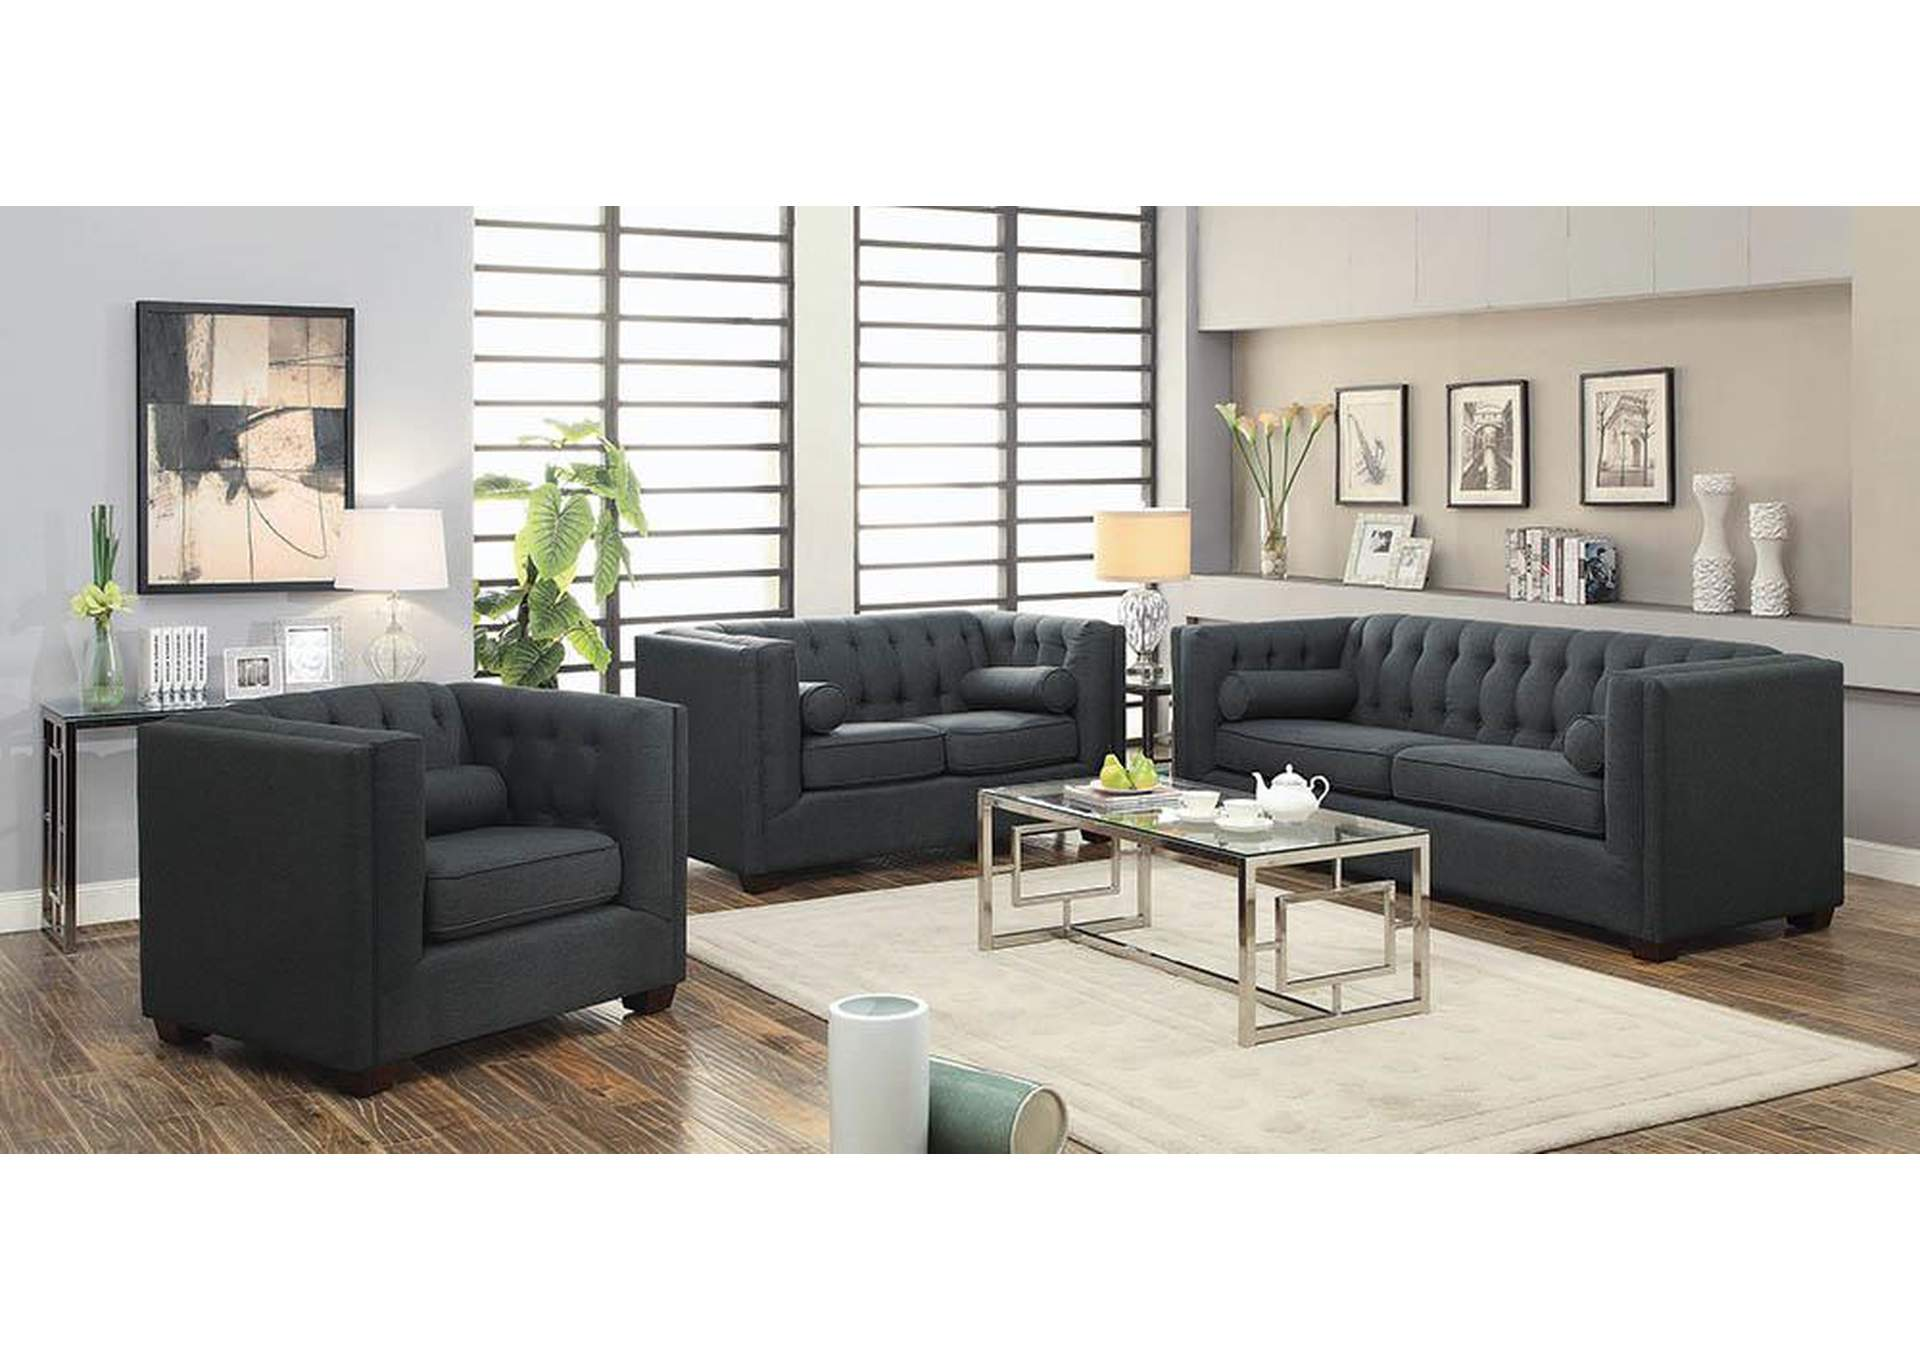 Cairns Brown Loveseat,Coaster Furniture